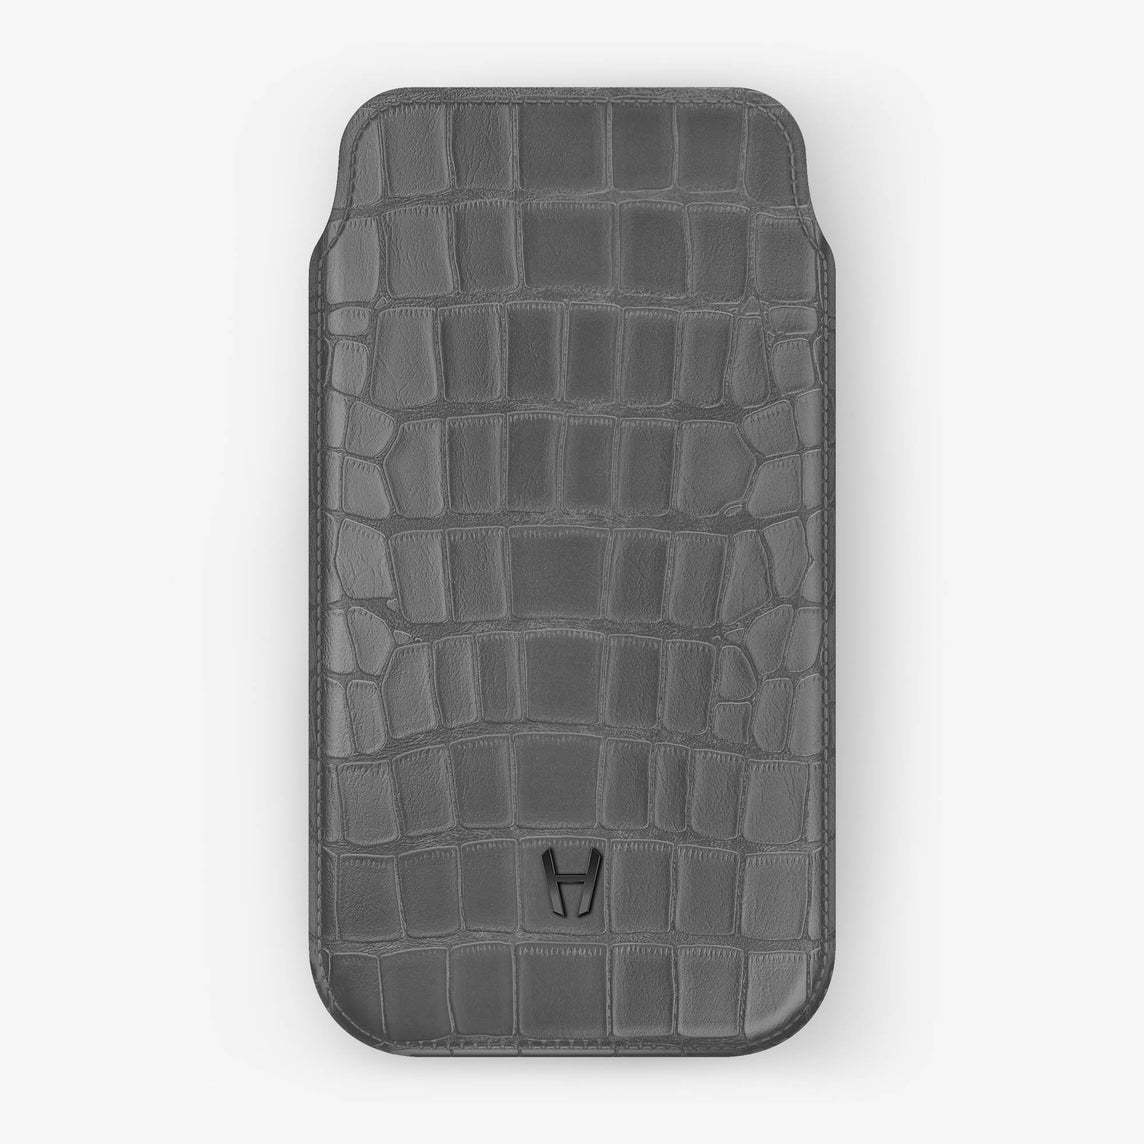 Alligator [iPhone Sleeve Case] [model:iphone-xr-case] [colour:light-grey] [finishing:black]